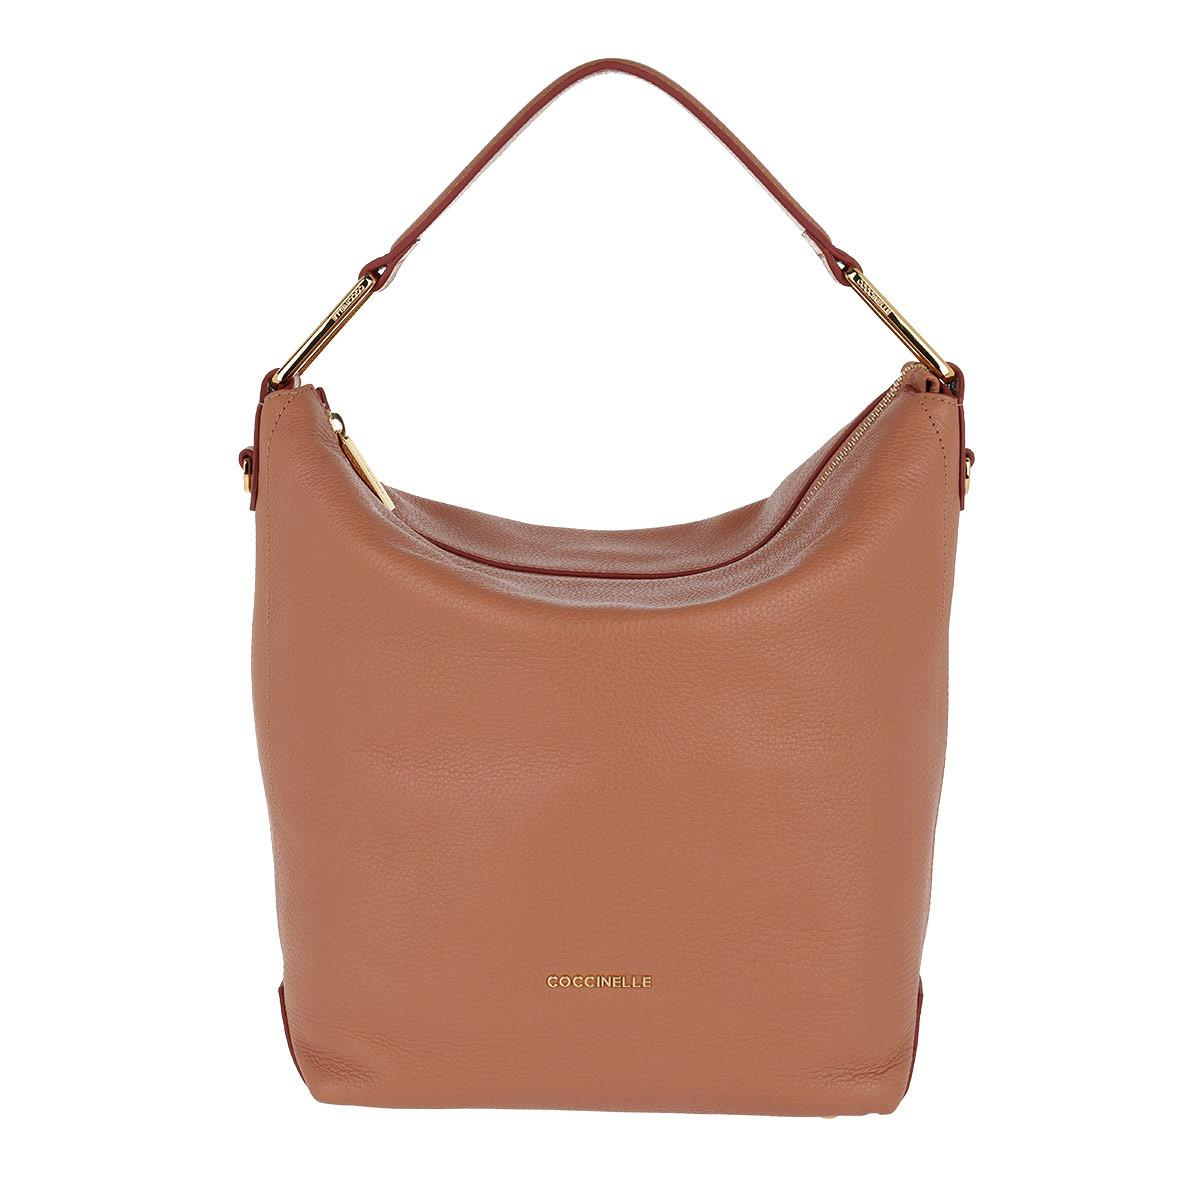 a31bf224cd8e Coccinelle Liya Leather Hobo Bag Argile bourgogne in Brown - Lyst